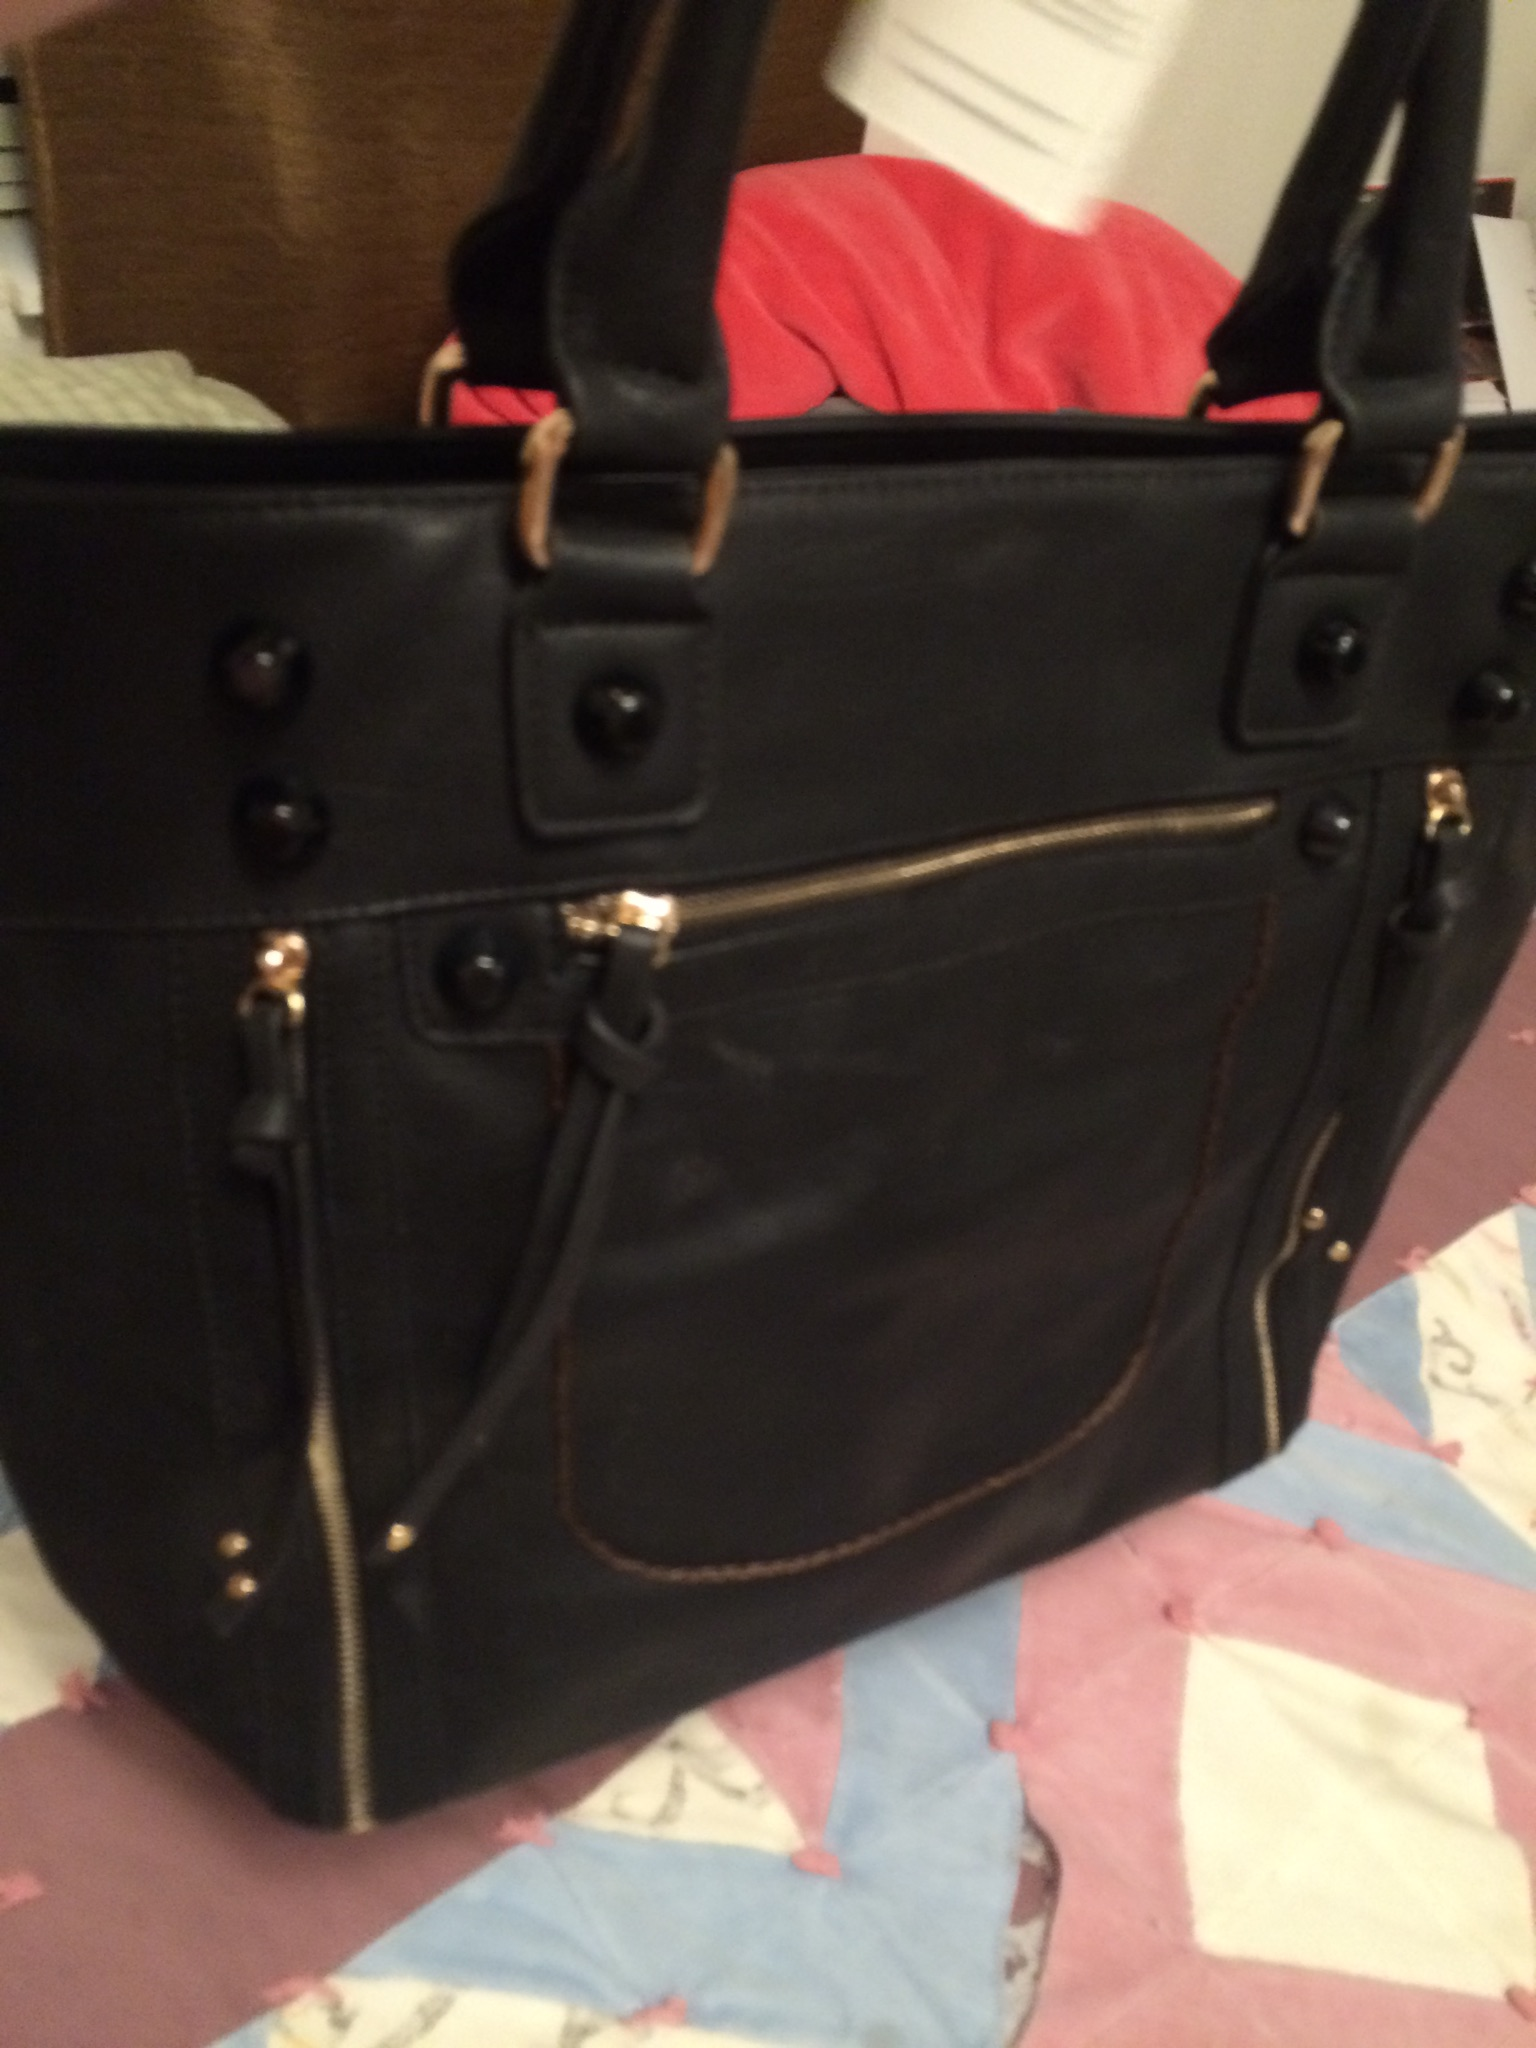 I Have Been Looking For A New Handbag And Recently Received This Great Bag From Robert Matthew It Is The Olivia Shoulder Tote In Black